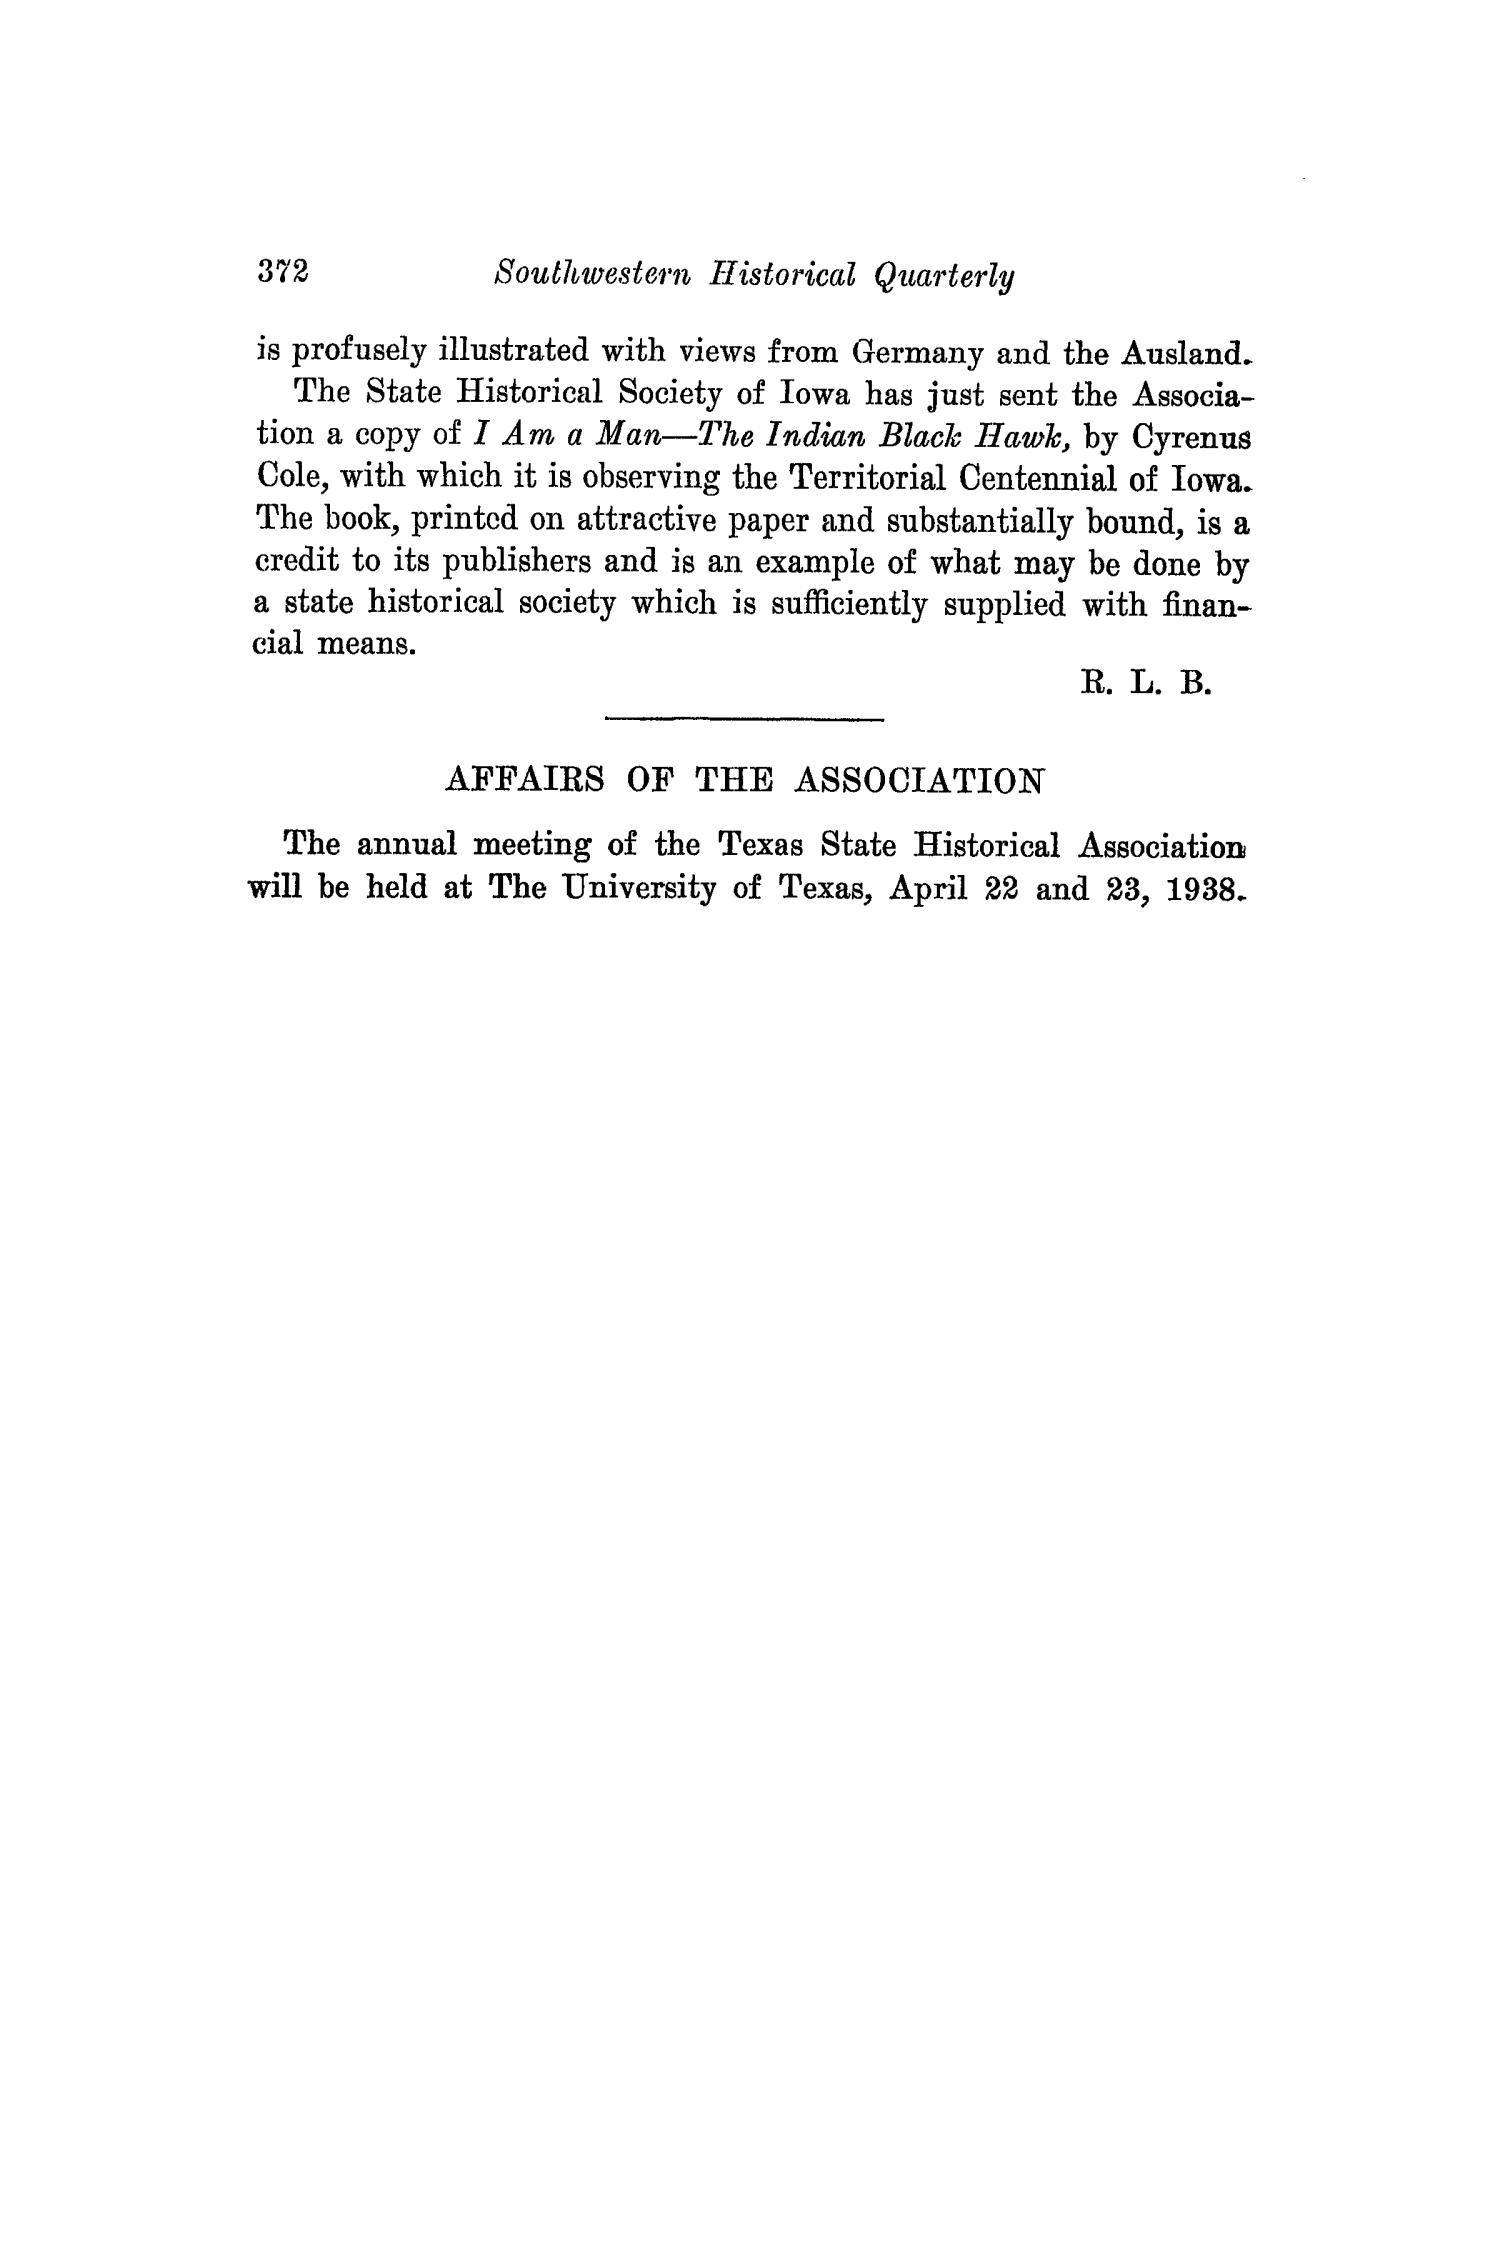 The Southwestern Historical Quarterly, Volume 41, July 1937 - April, 1938                                                                                                      372